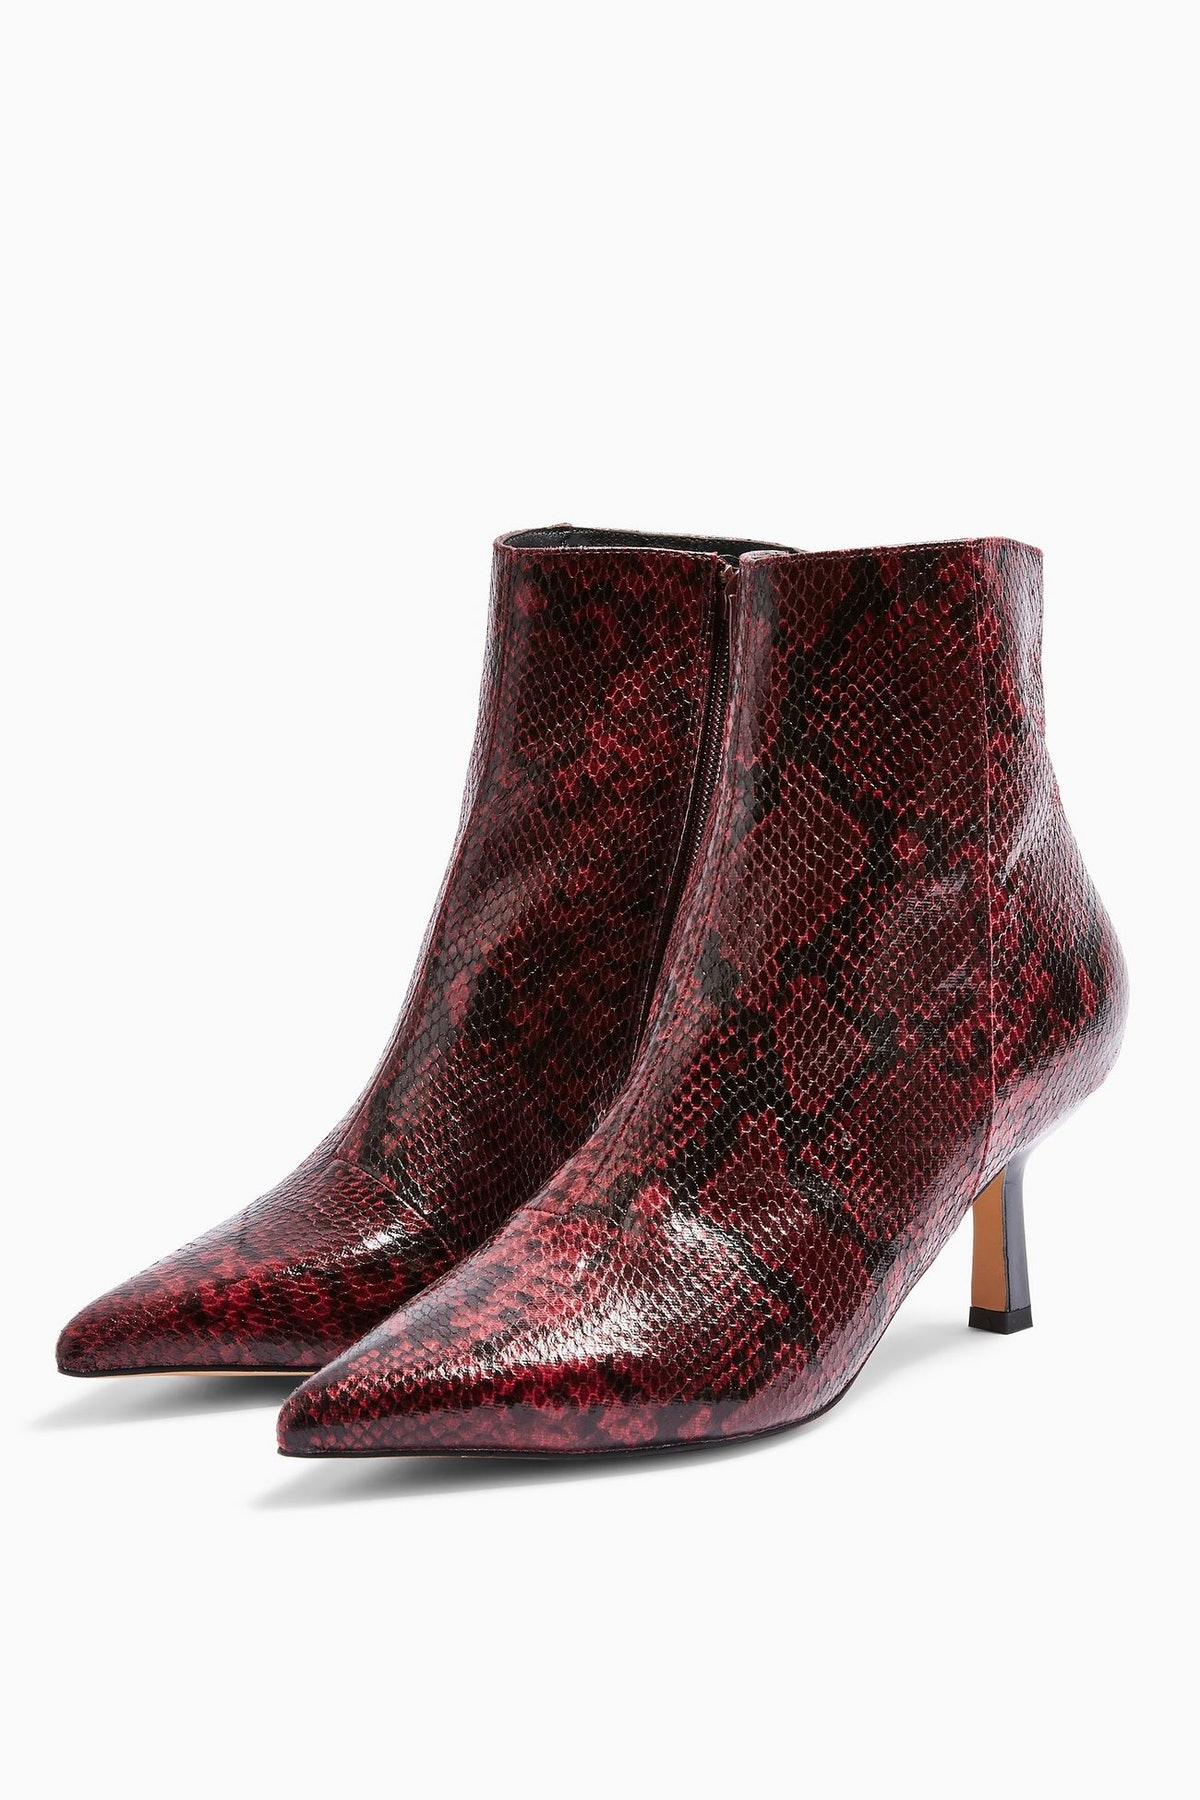 MACI Burgundy Snake Pointed Boots